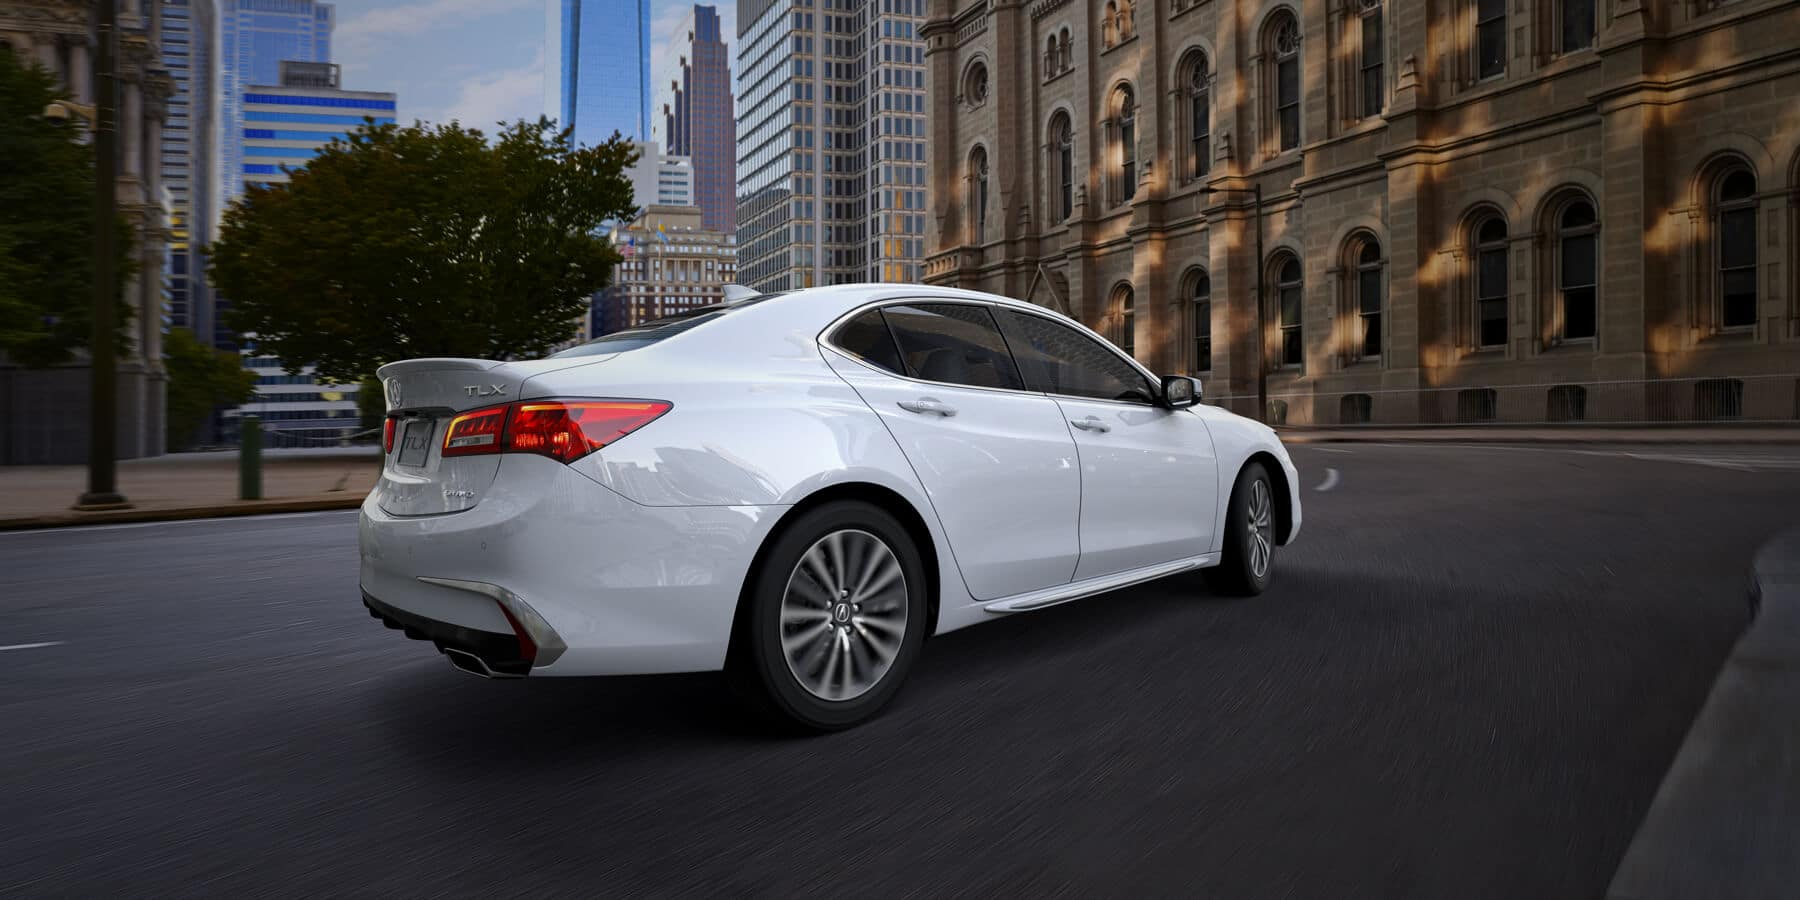 2020 Acura TLX Platinum White Pearl Rear Angle HP Slide